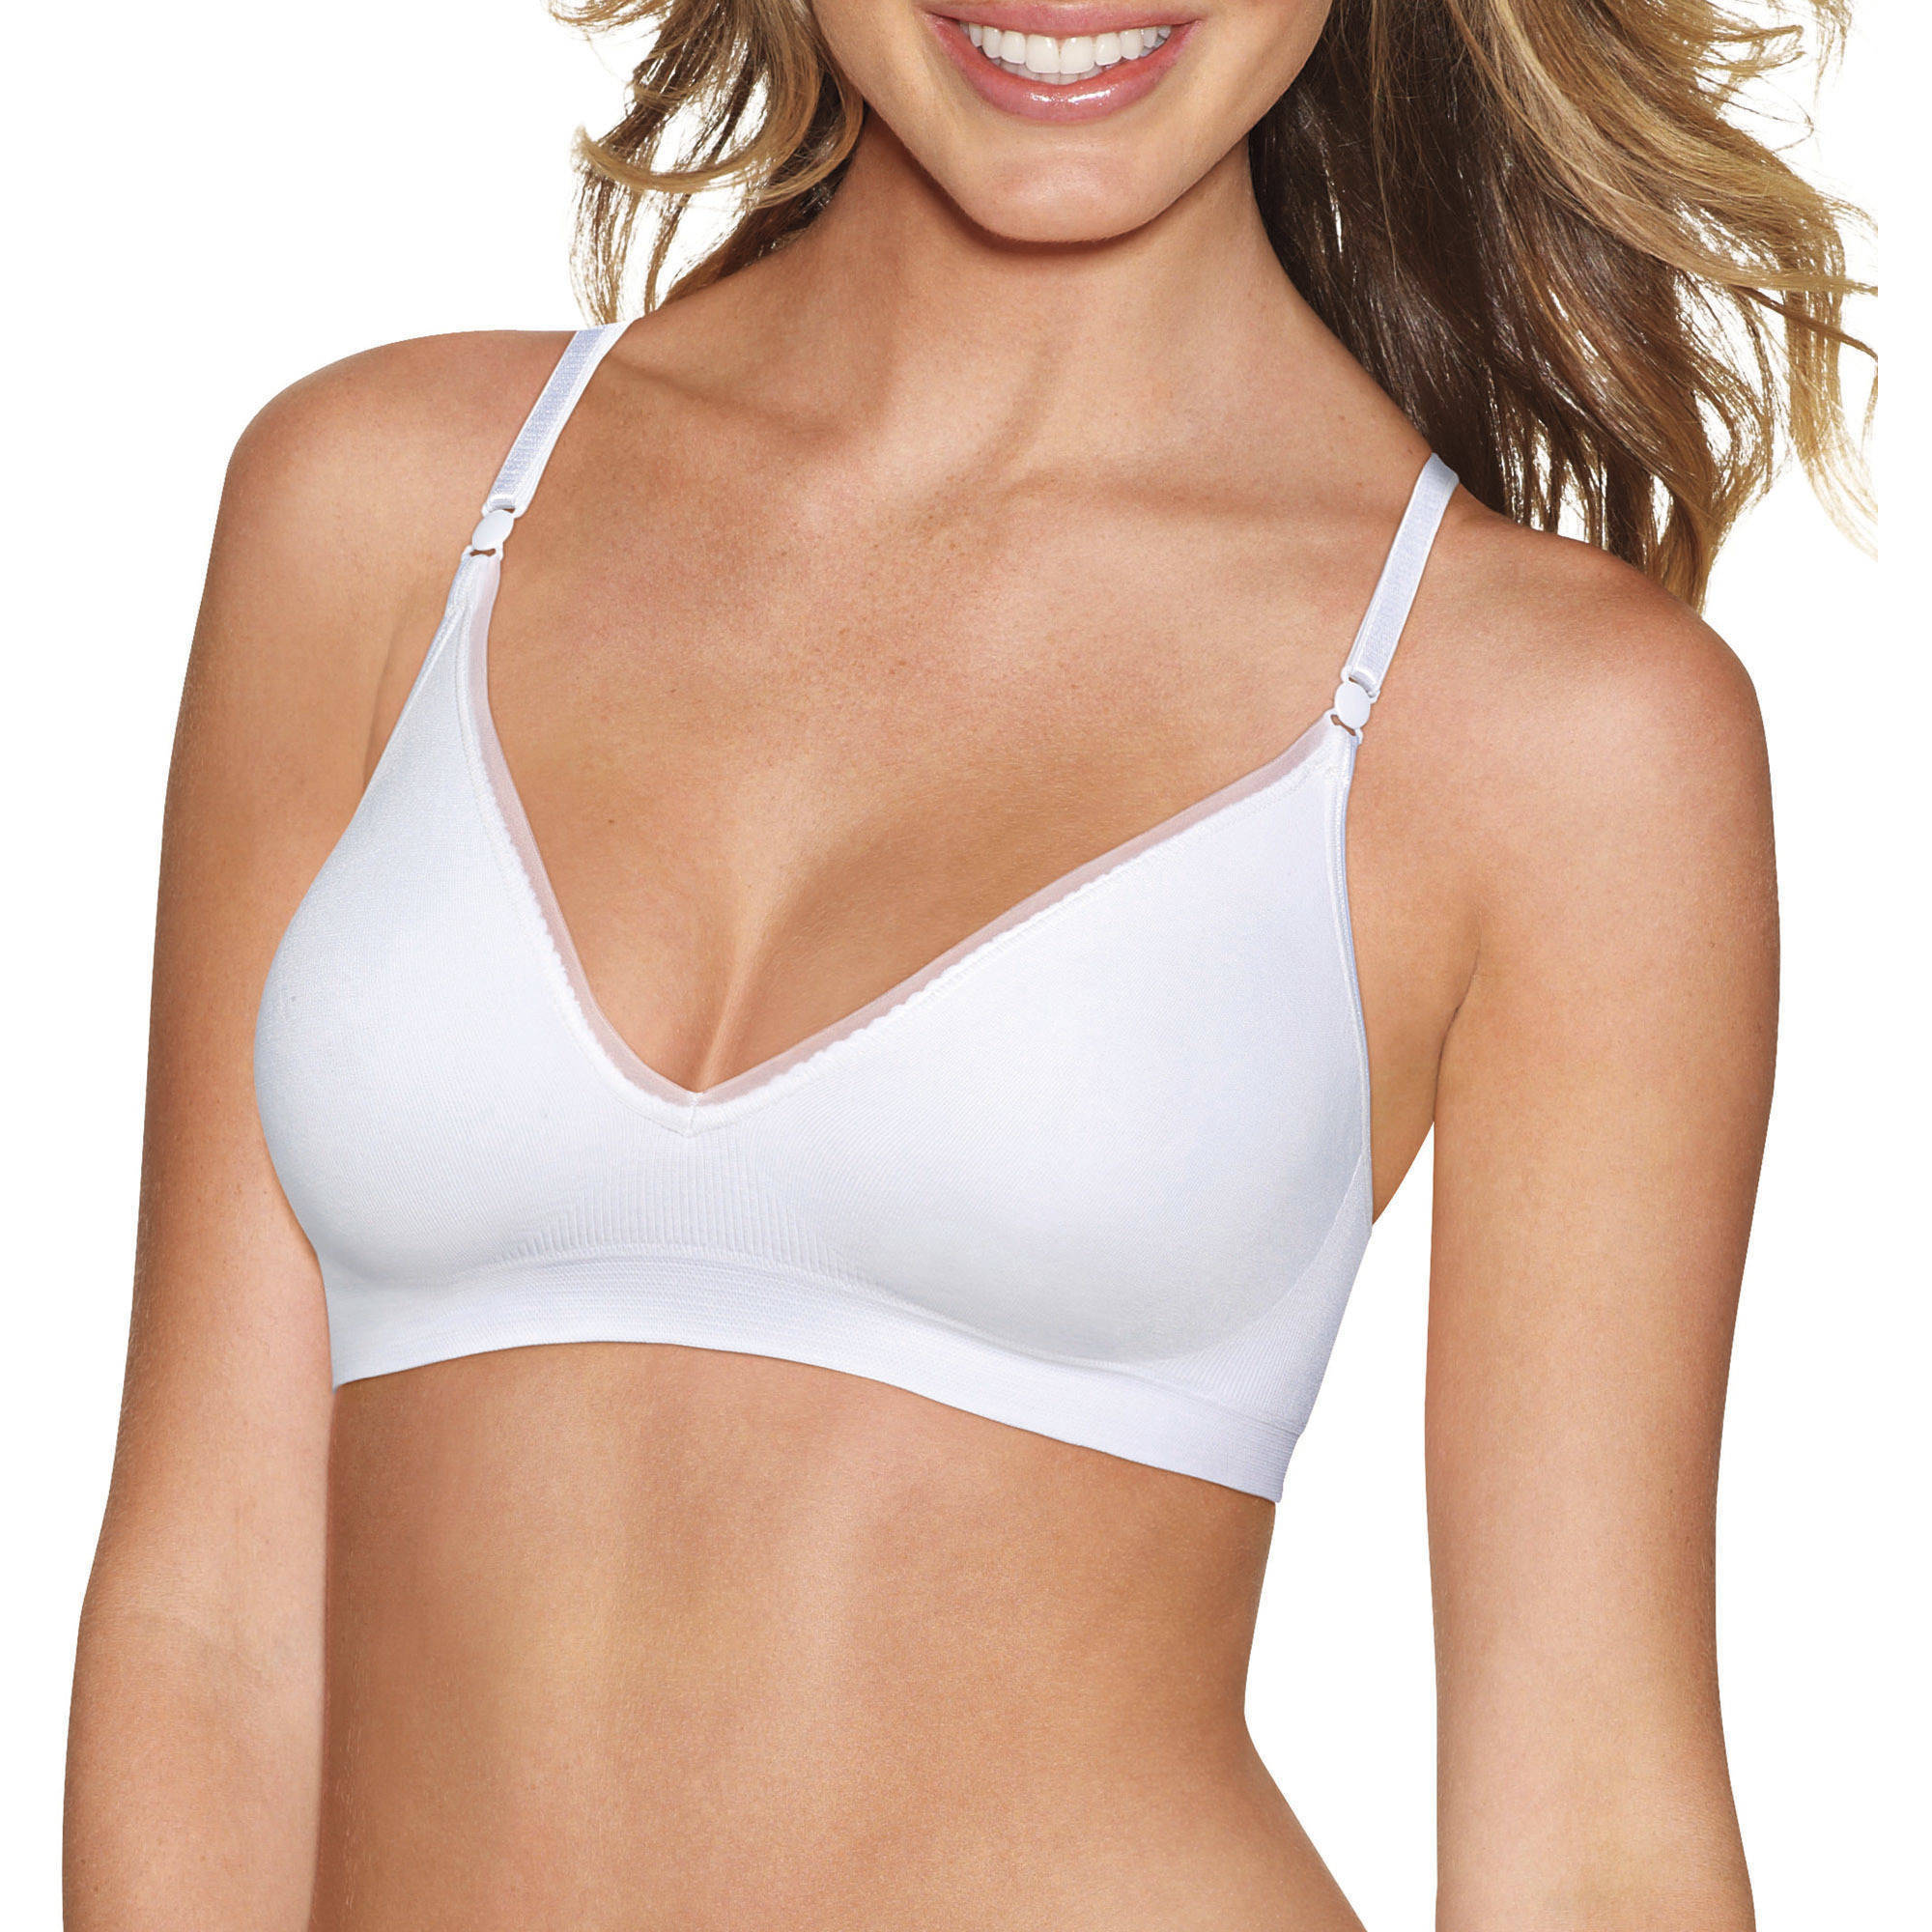 Women's Seamless Comfy Support Wire Free Bra, Style G795